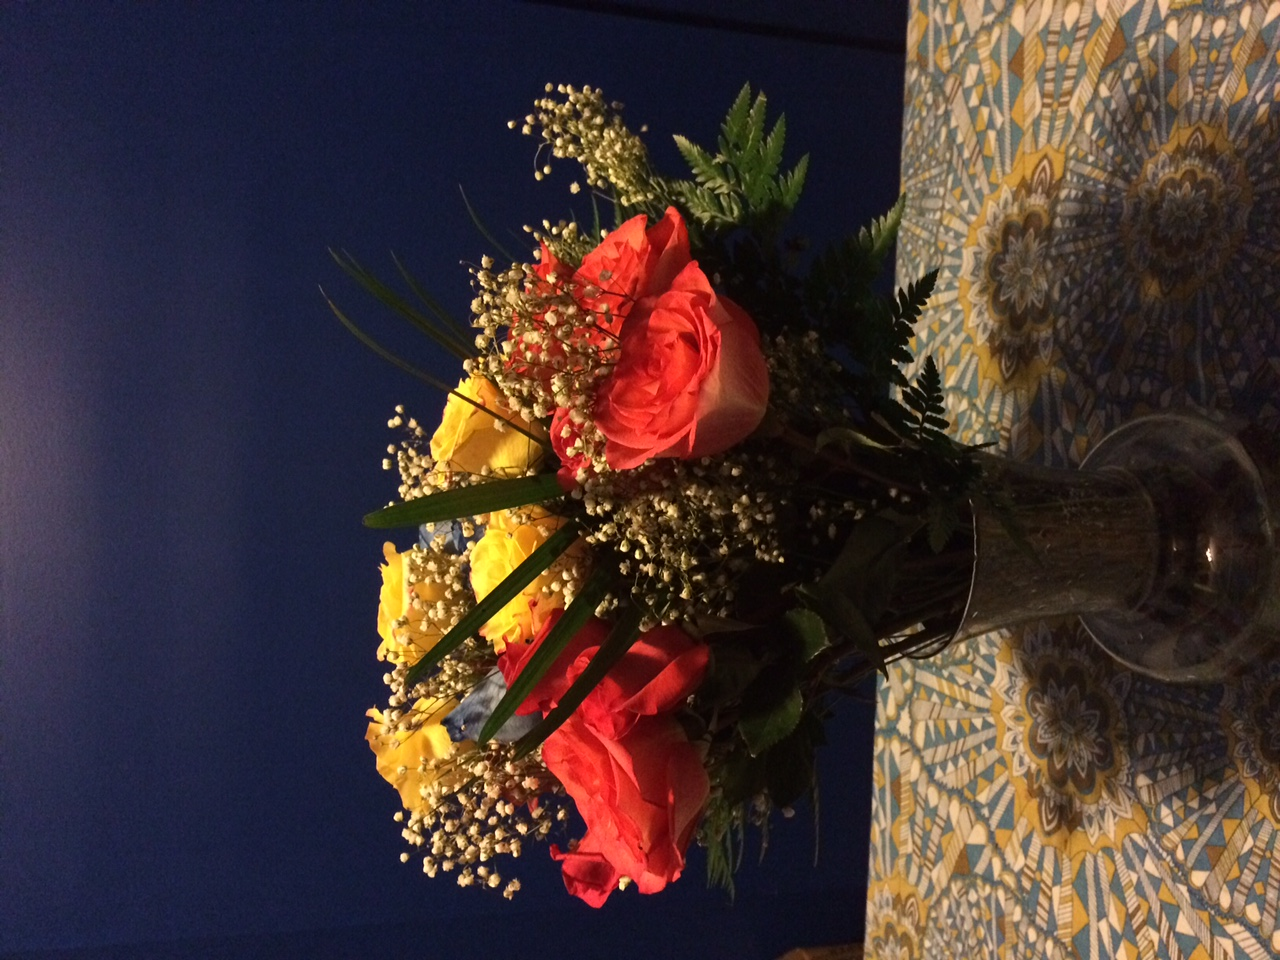 Thanks for the flowers Elizabeth!